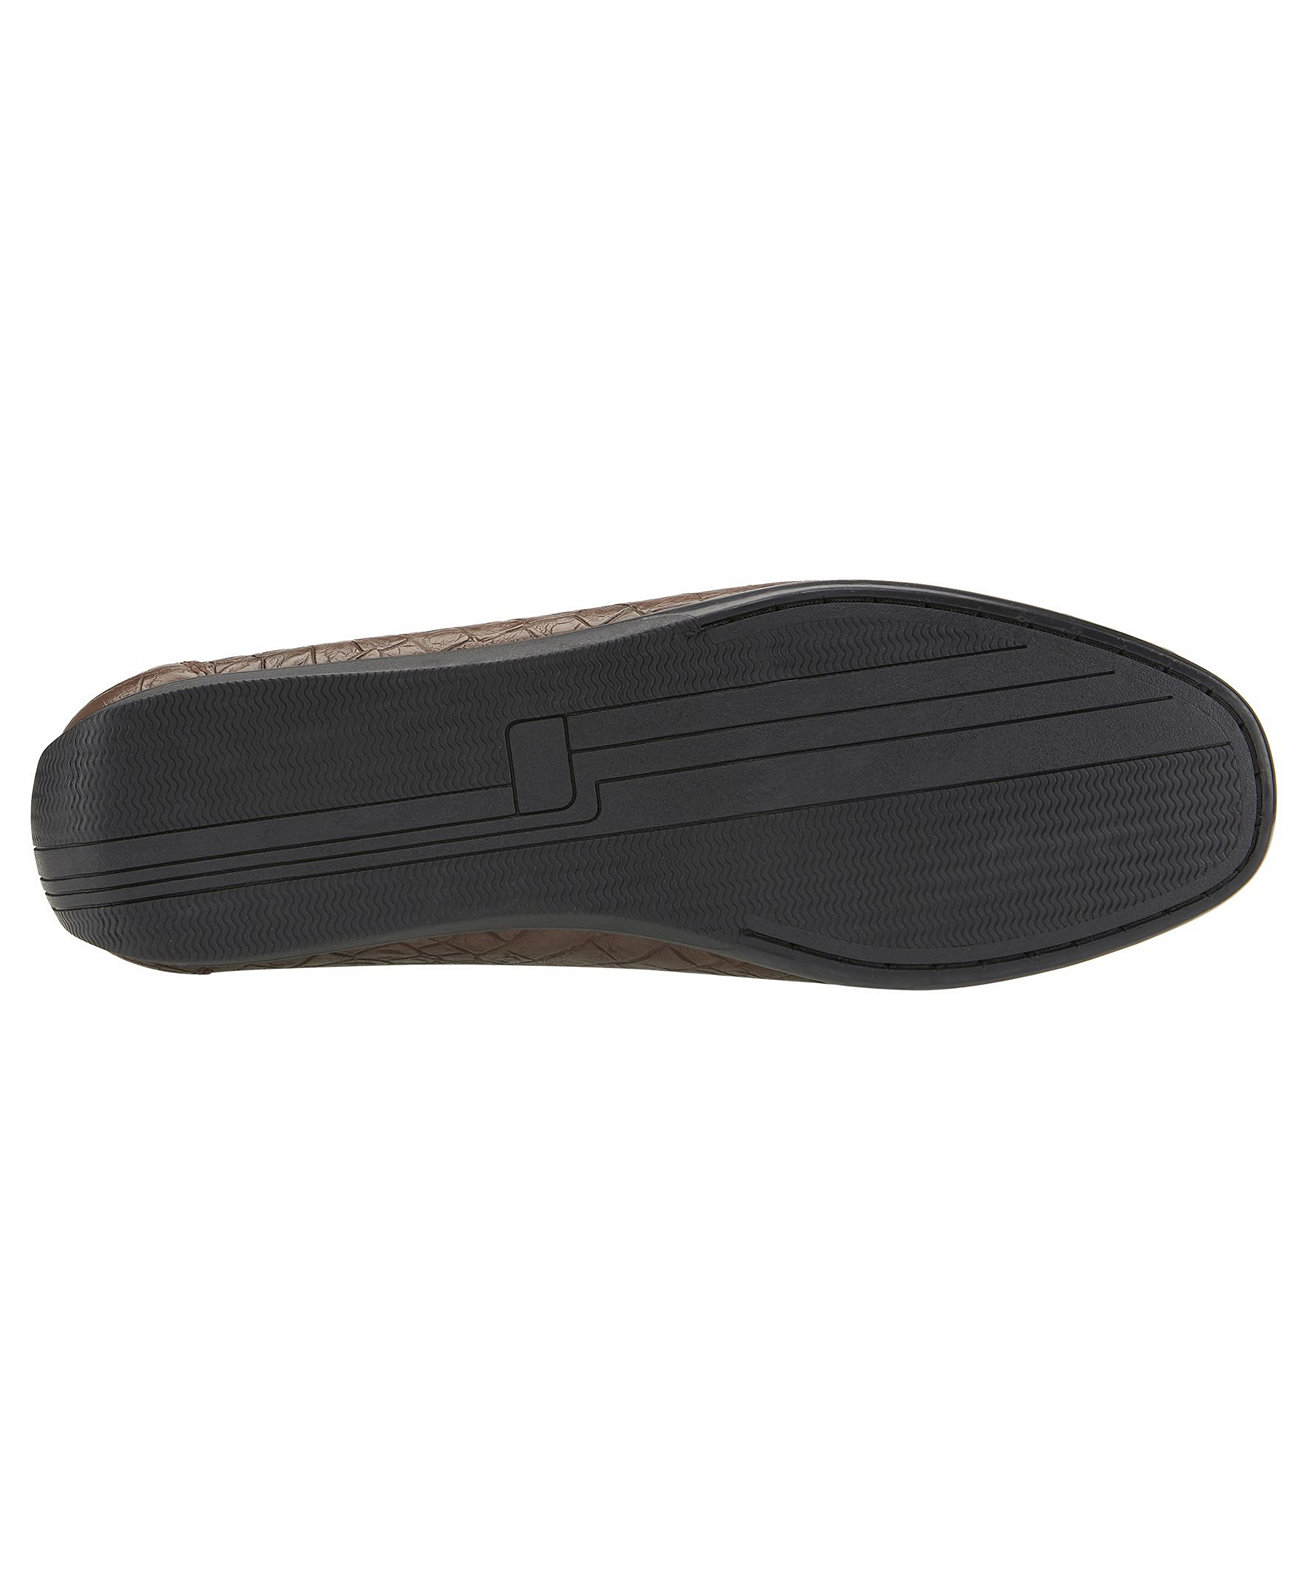 Мужская обувь Cassidy Dress Loafer XRAY